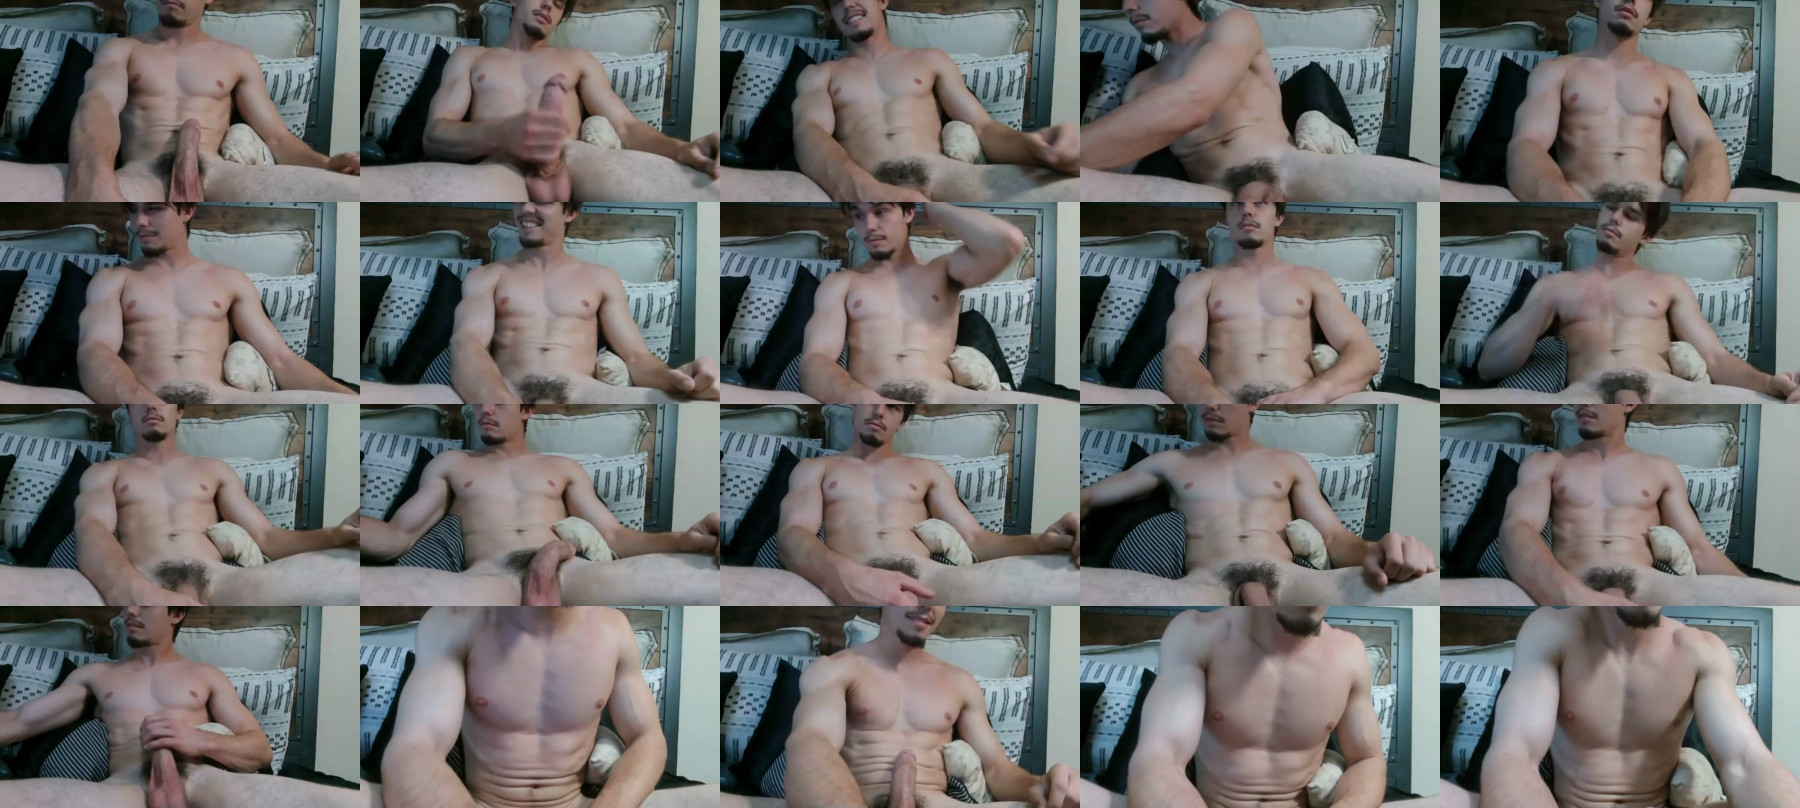 Just1n8p Chaturbate 23-06-2021 Male Download